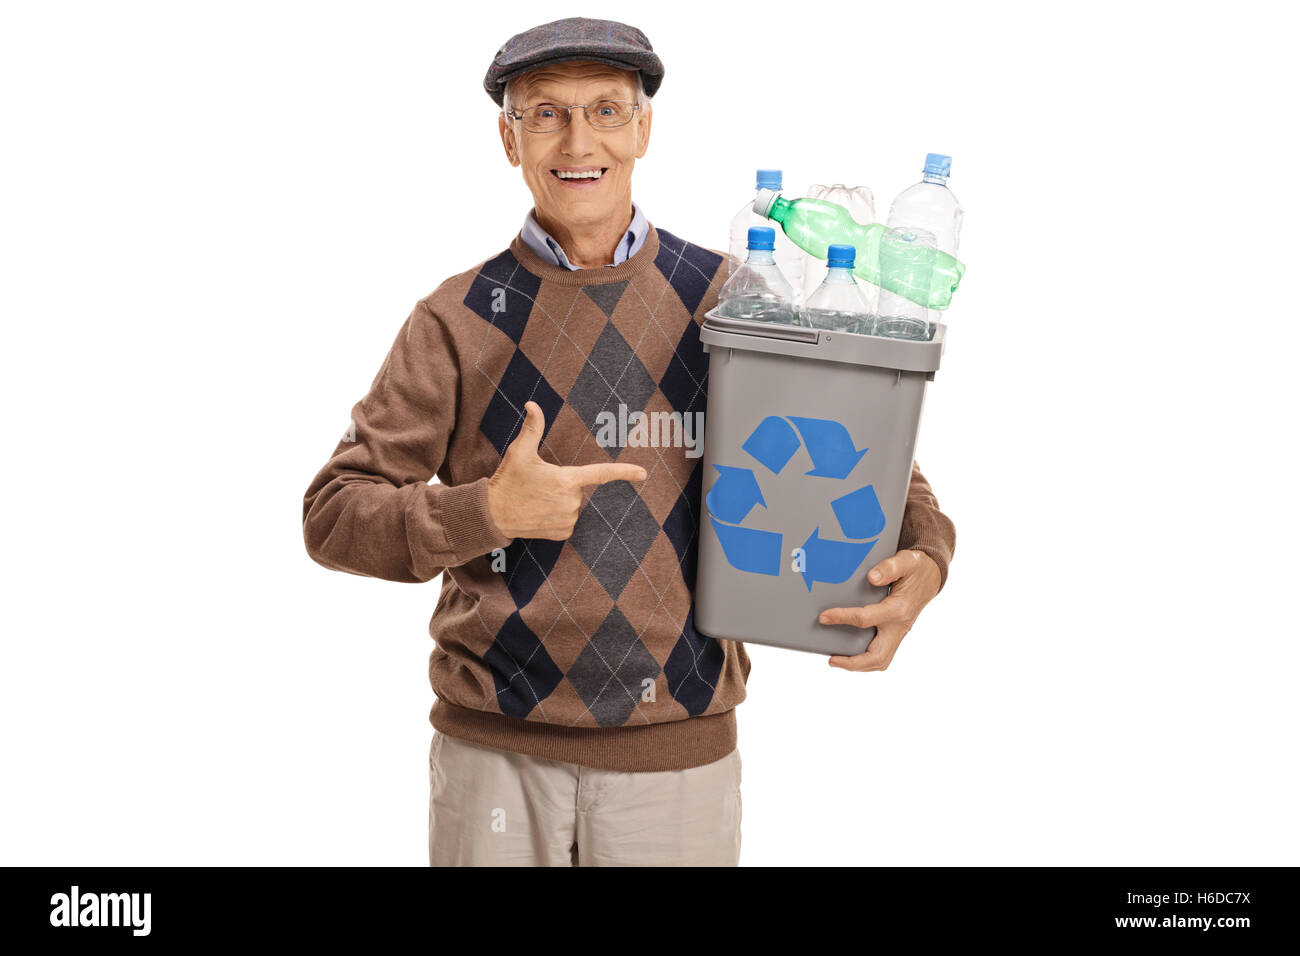 Cheerful elderly man holding a recycling bin full of plastic bottles and pointing isolated on white background - Stock Image